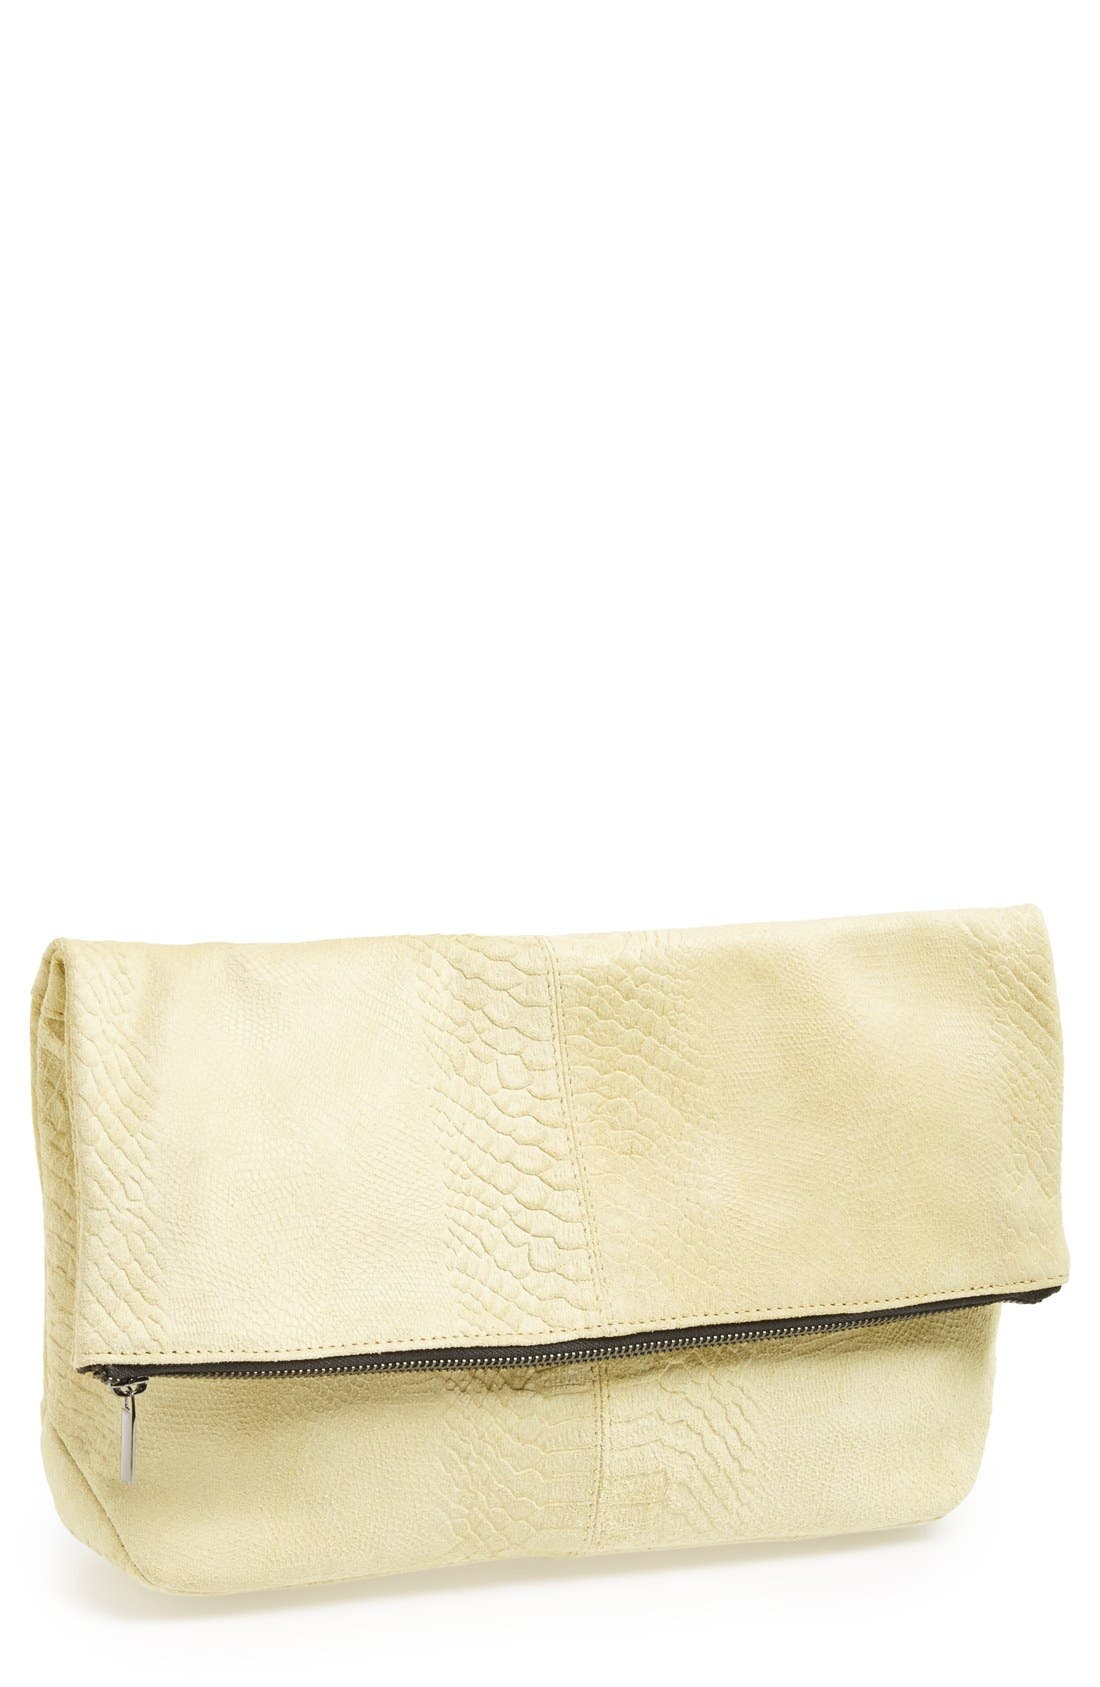 Main Image - Topshop Snake Embossed Suede Clutch